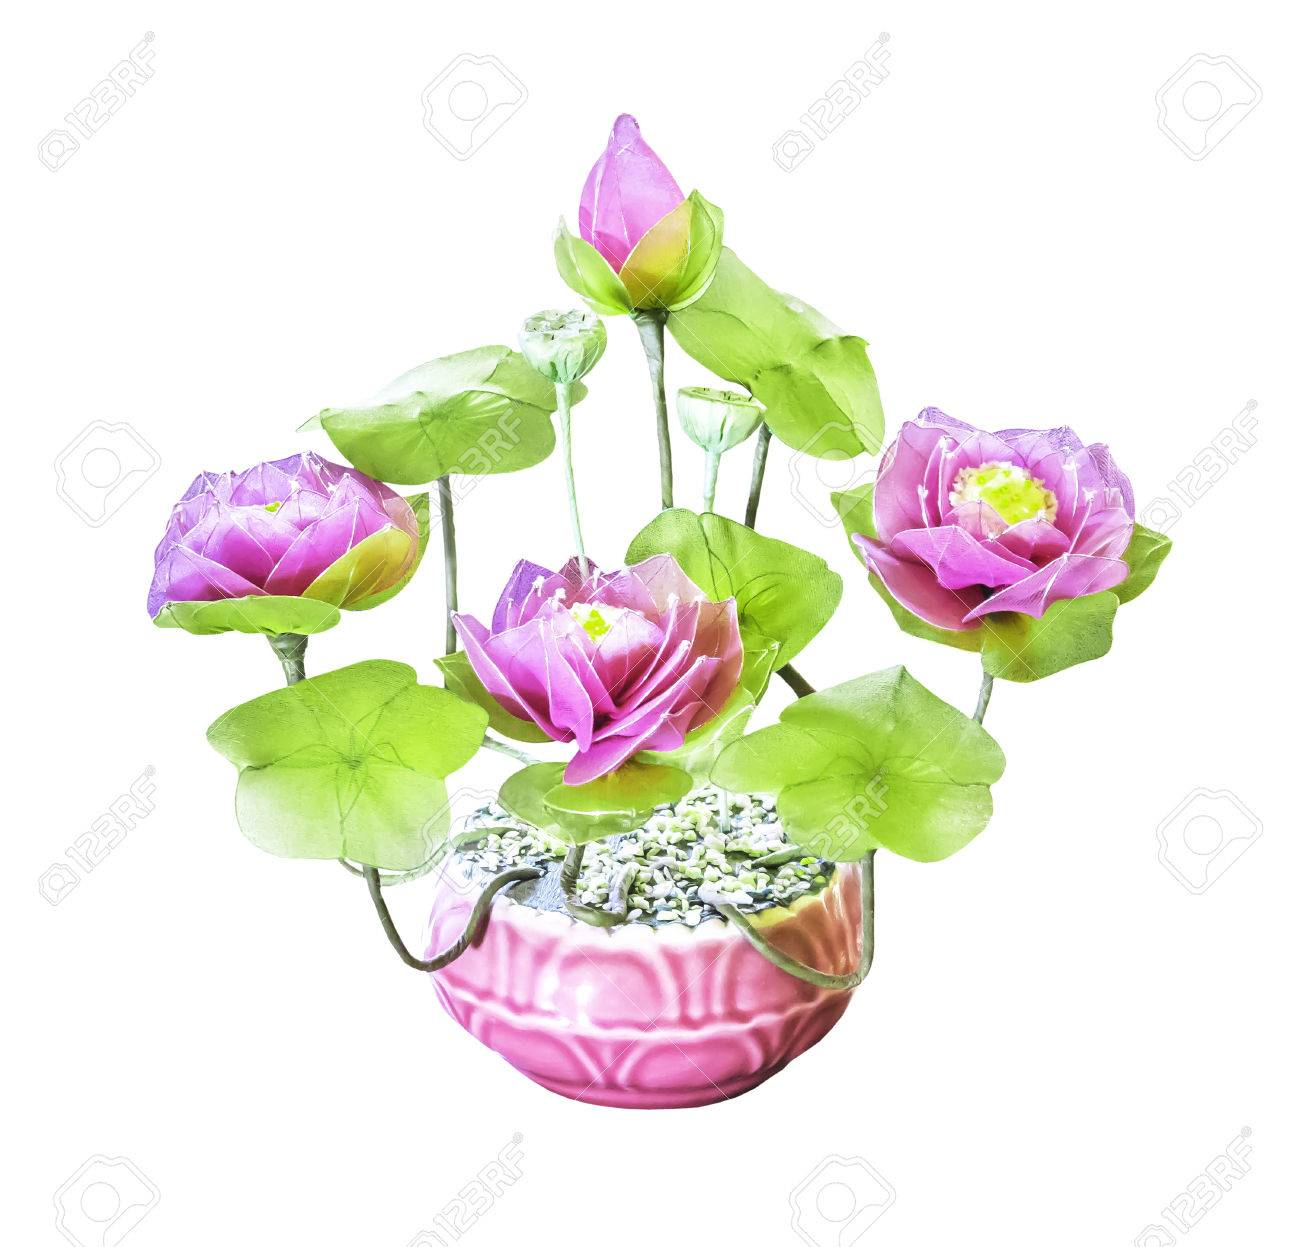 Artificial Bouquet Lotus Flower Isolated On White Background Stock